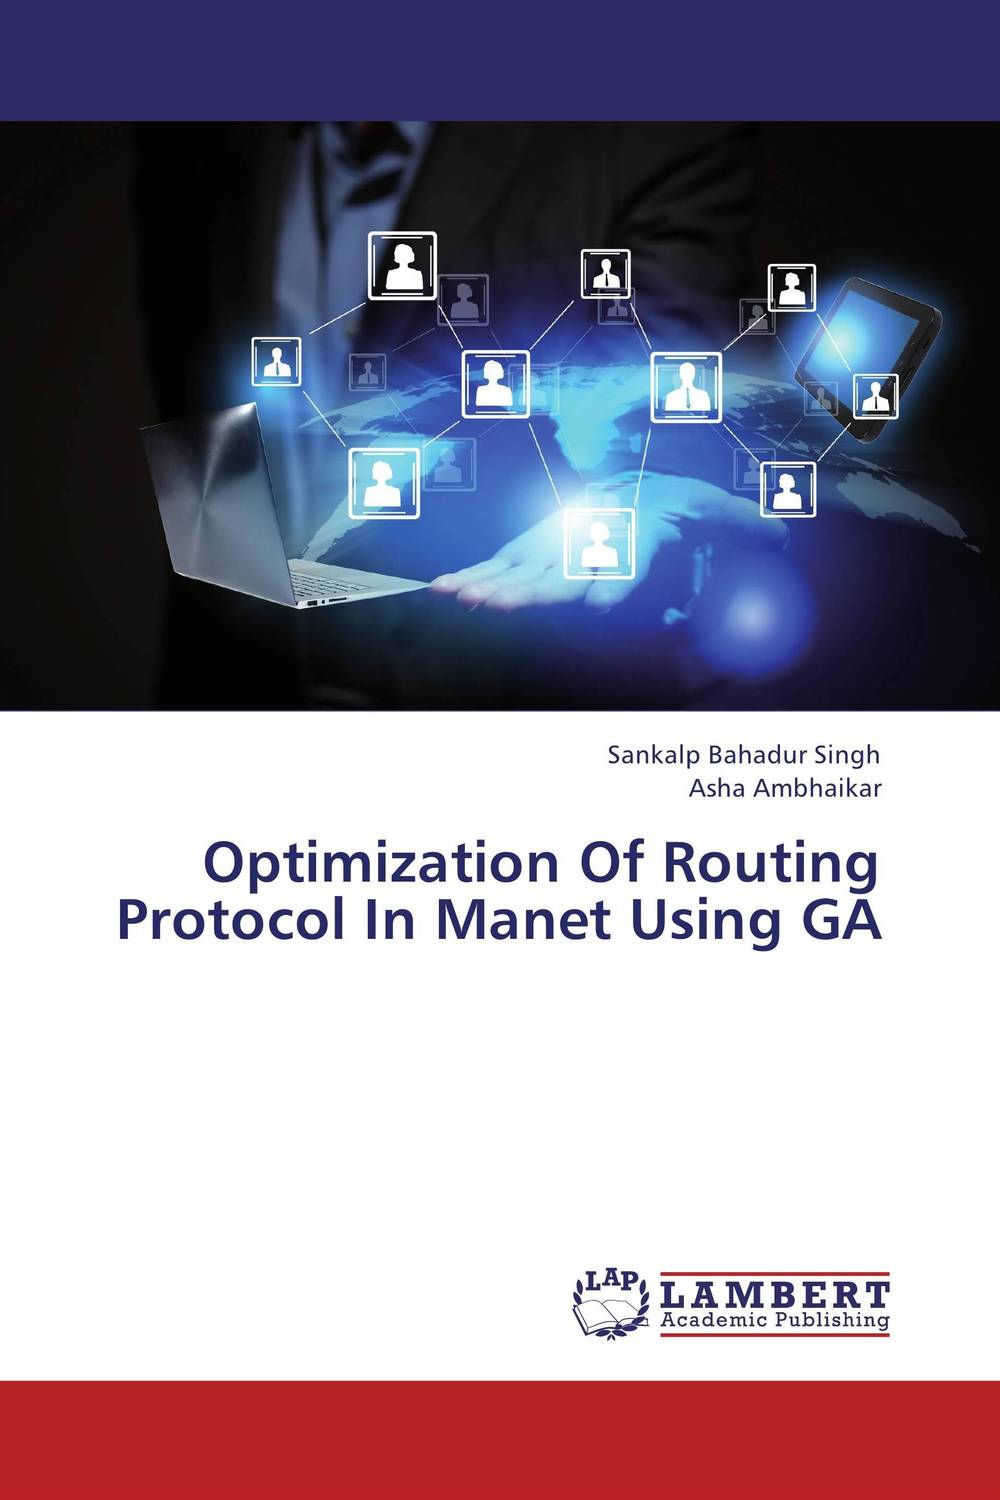 Optimization Of Routing Protocol In Manet Using GA power aware reliable multicasting algorithm for mobile ad hoc networks